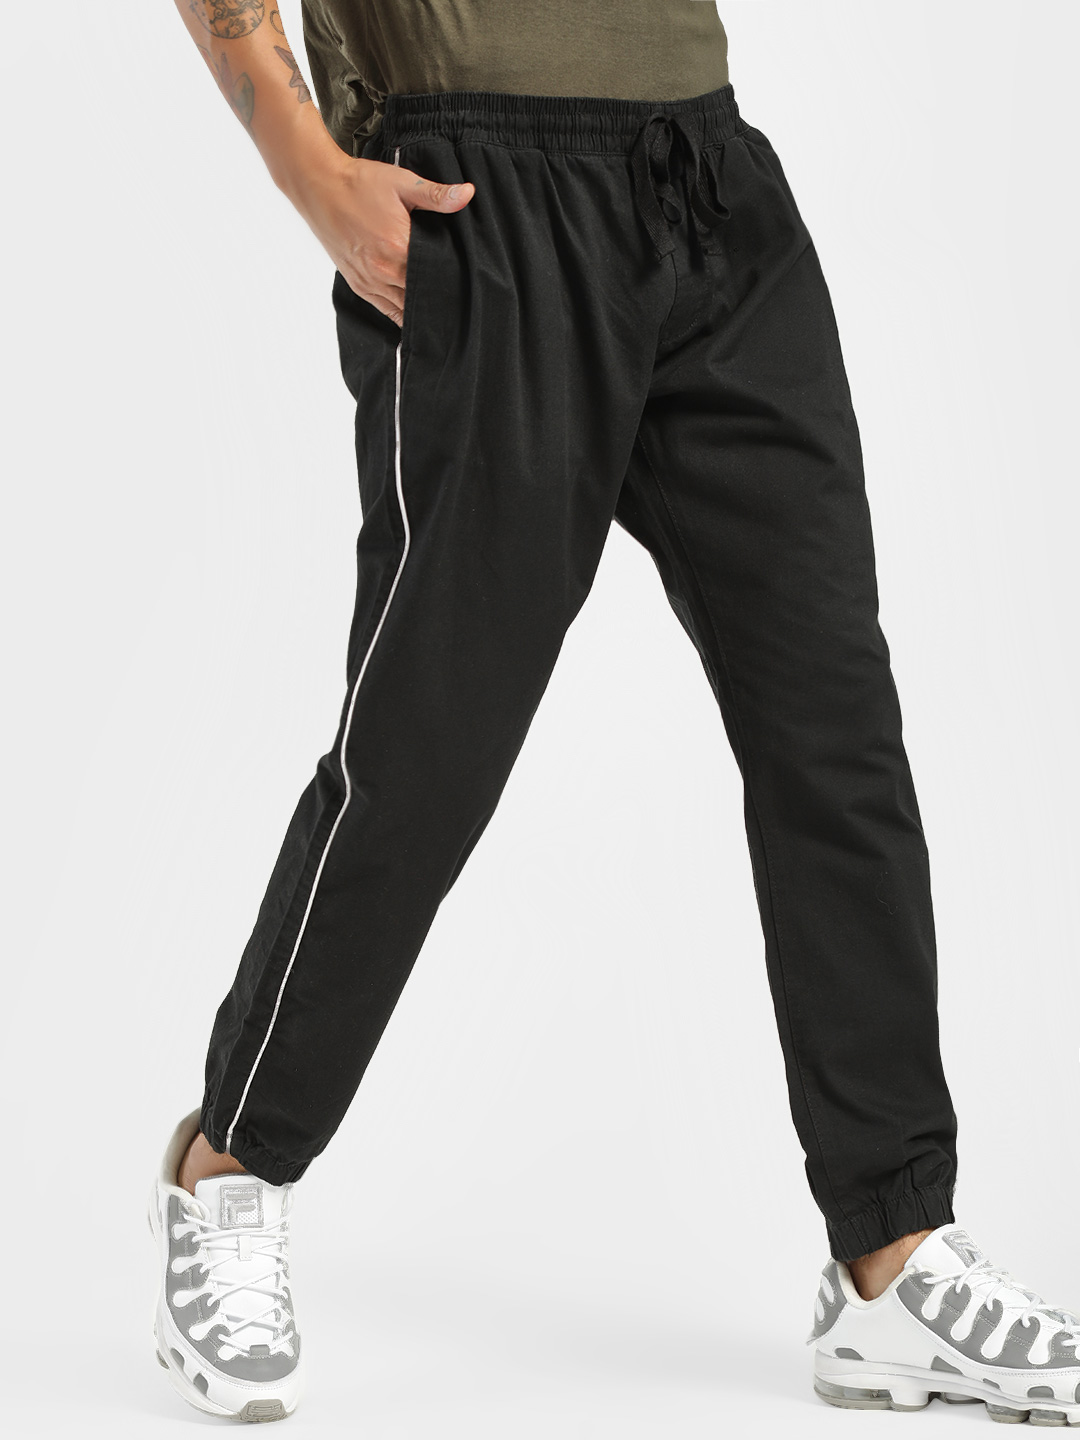 Brave Soul Black Contrast Side Piping Joggers 1